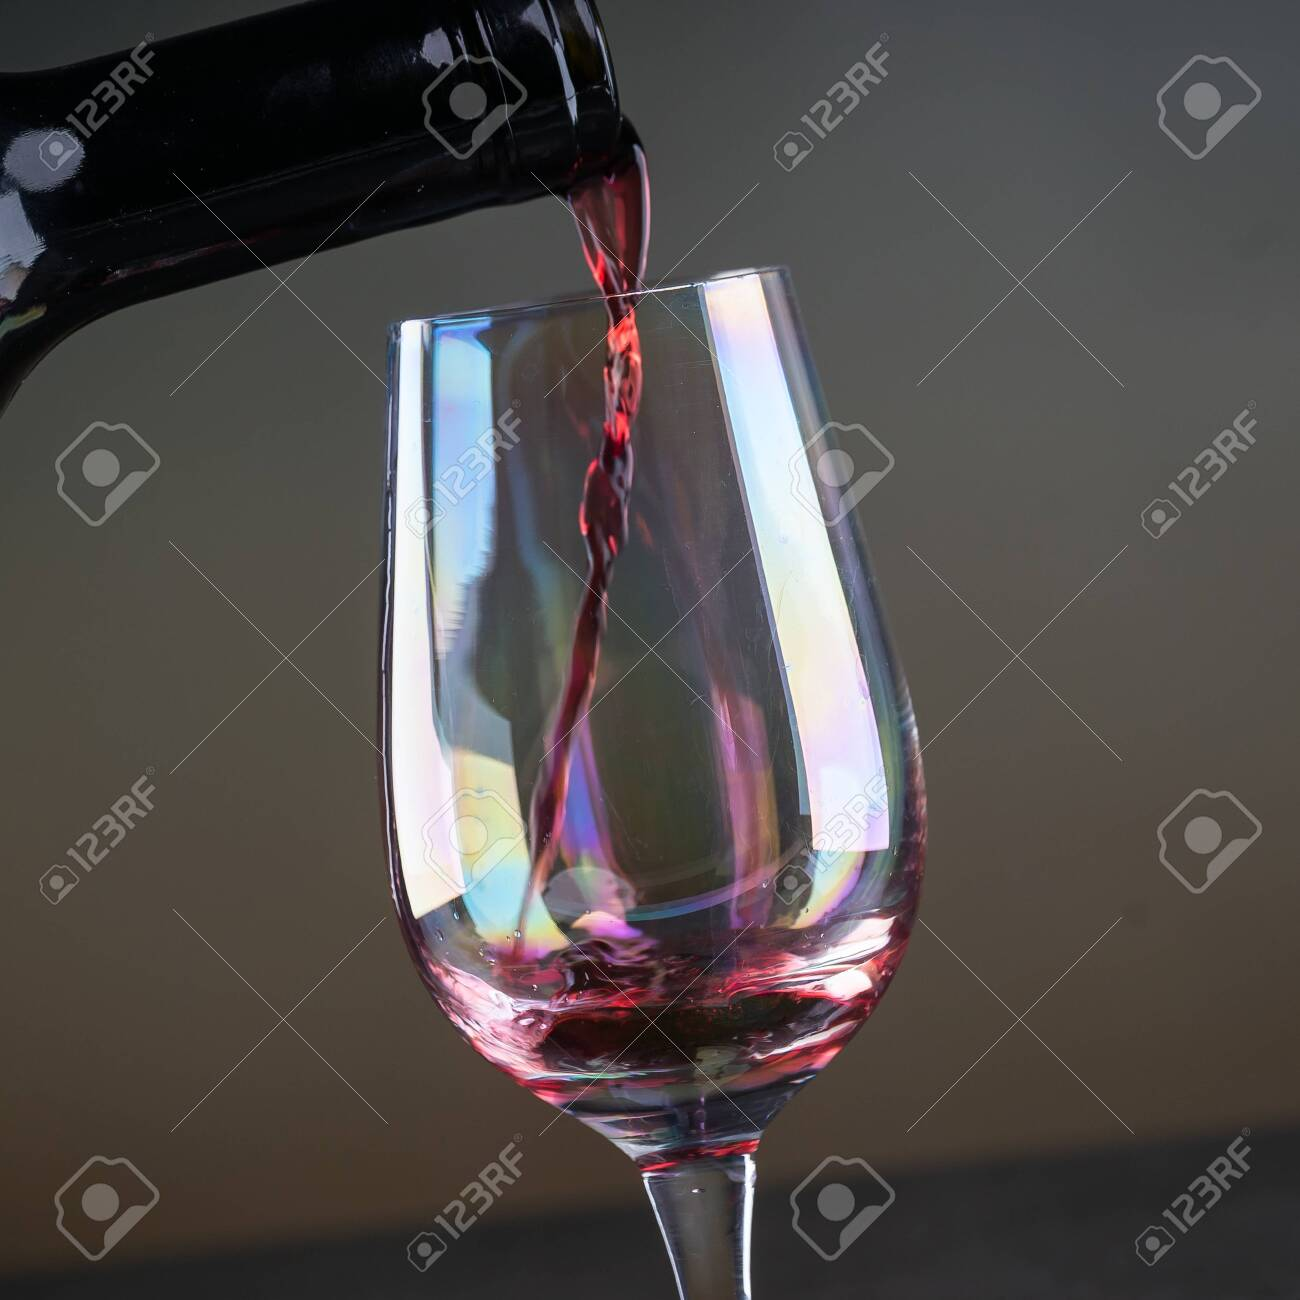 Red wine being poured into a glass close-up - 142549810